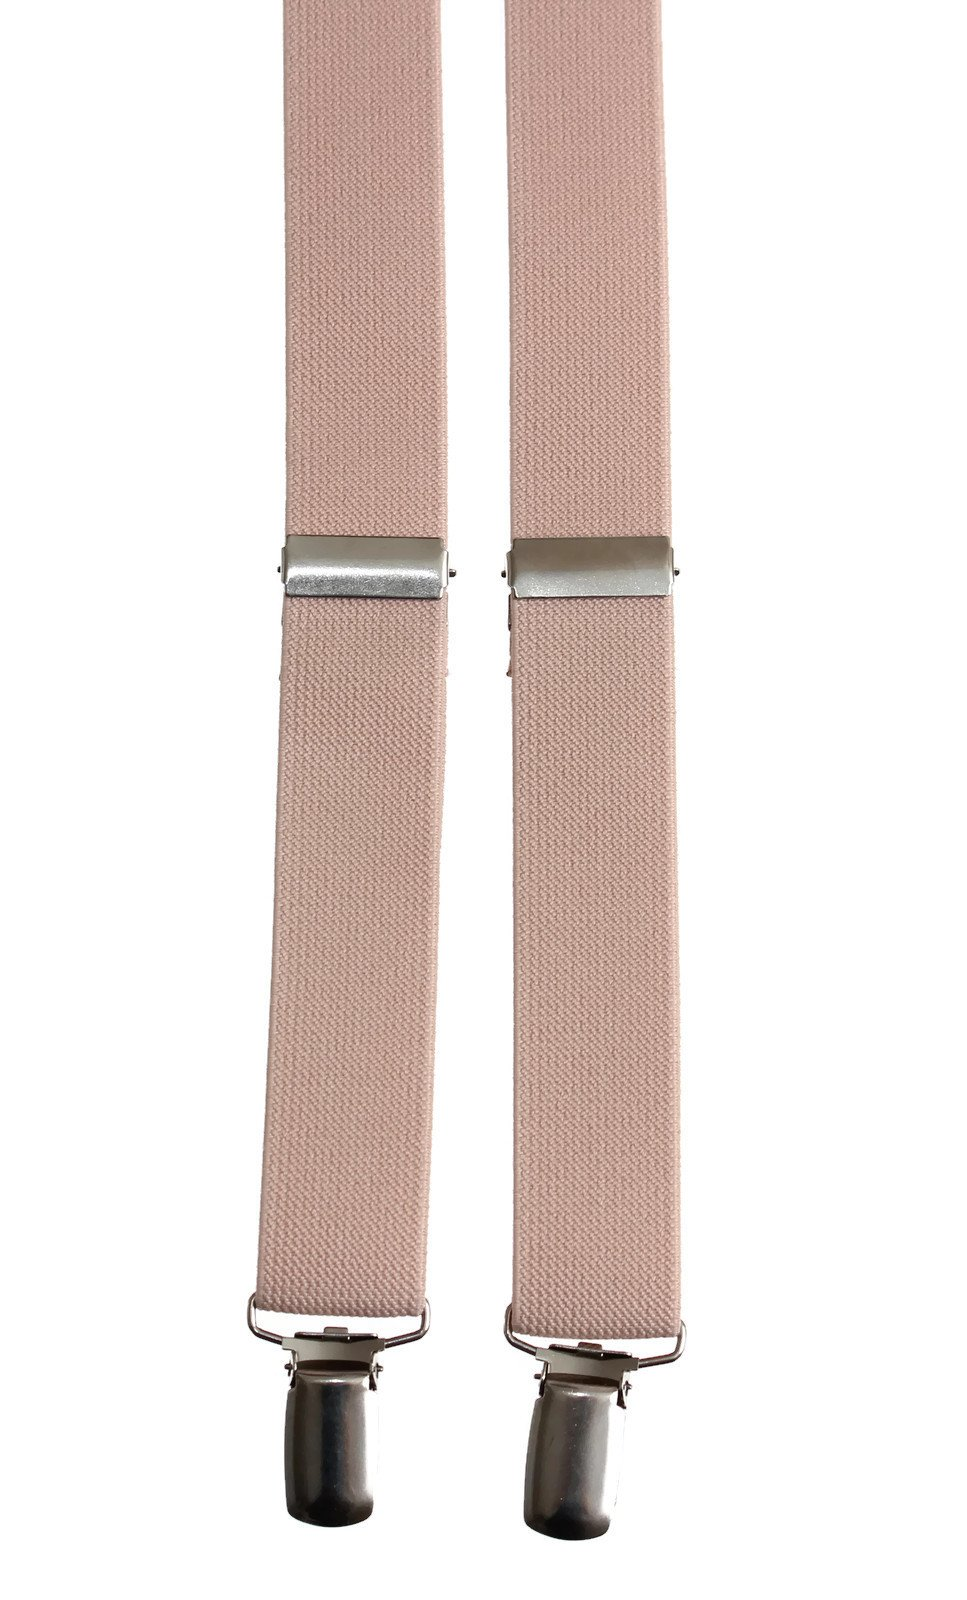 Kids Peach Adjustable Suspender and Bow Tie Set, Fits on Average Ages 4-7 by Tuxgear (Image #3)